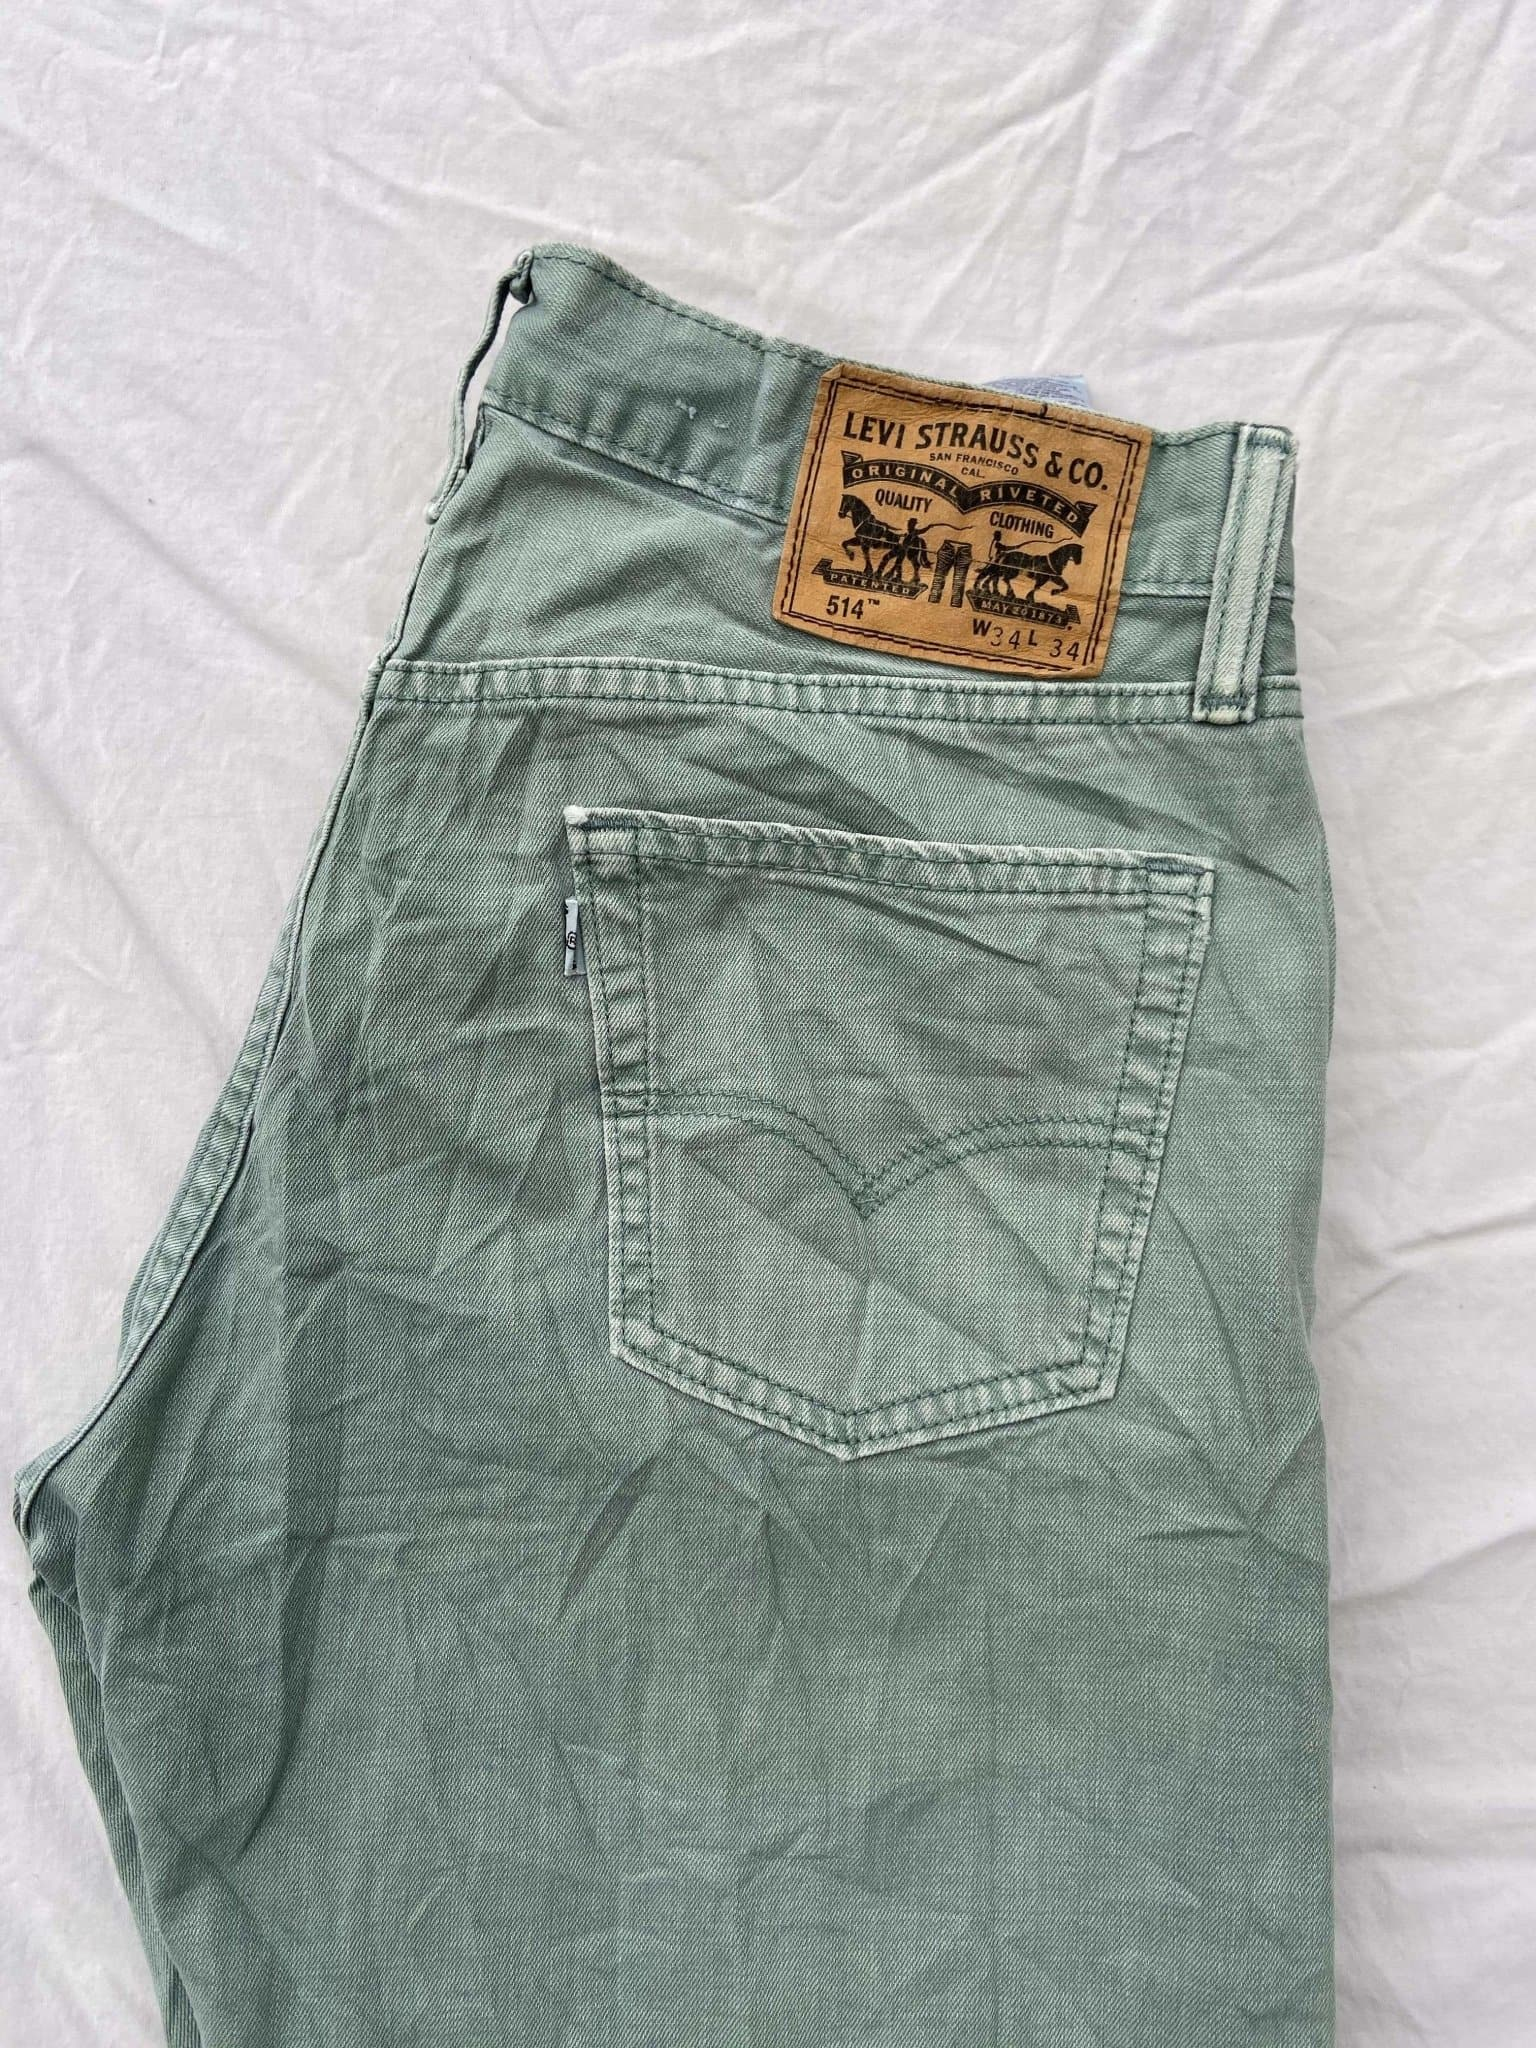 Vintage Levi's 514 Jeans W34 L34 (K5) - Discounted Deals UK